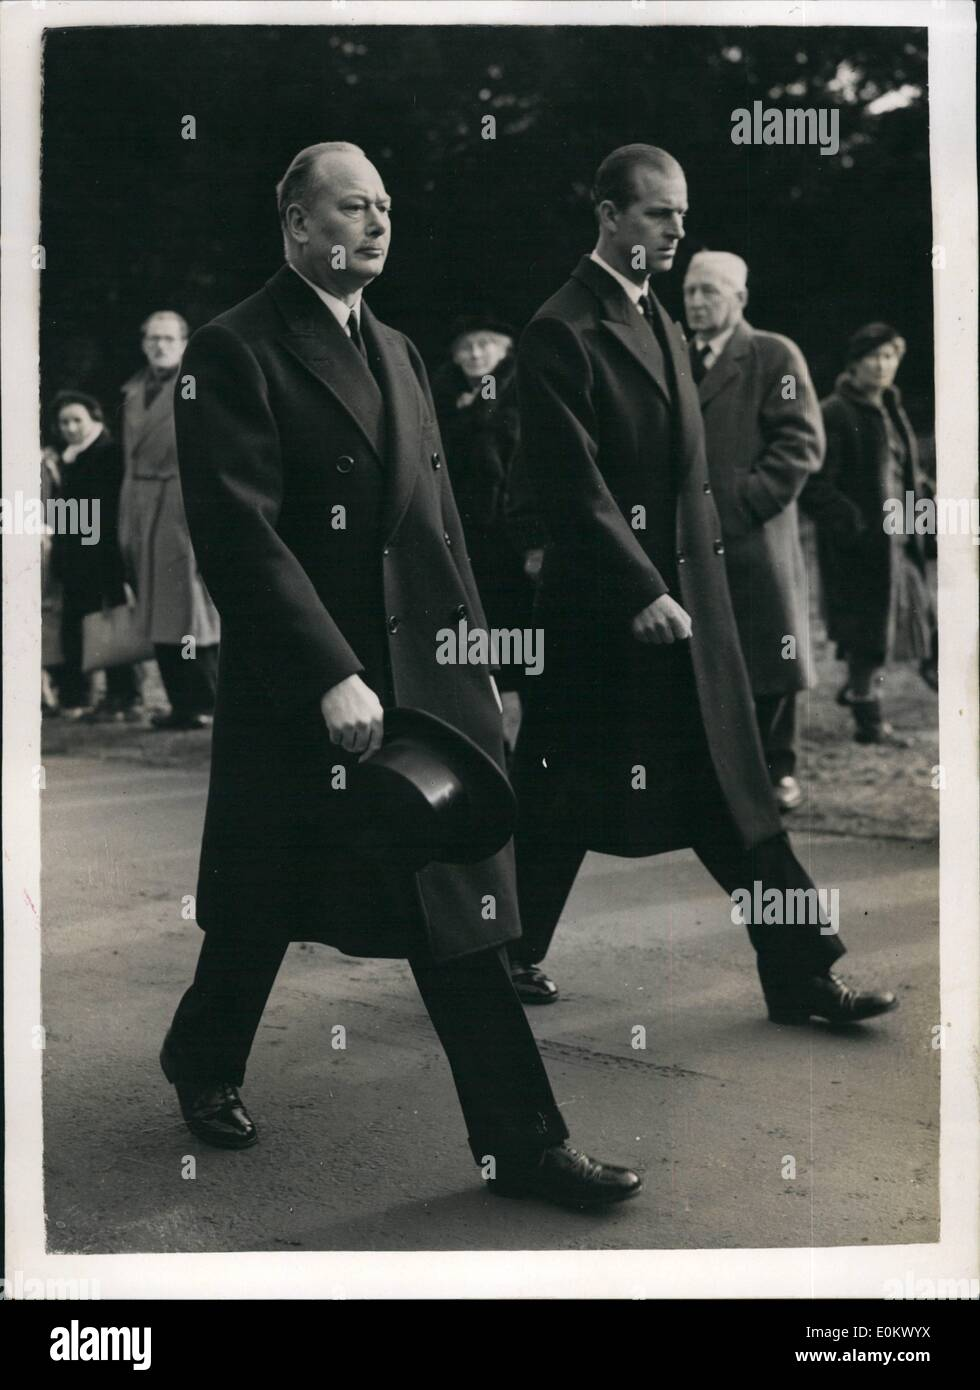 Feb. 02, 1952 - Duke of Edinburgh and Duke of Gloucester in procession, Kings Body on way to London; Photo Shows Following the Gortege as it left the Chapel for Waterloo Station is the Duke of Edinburgh and the Duke of Gloucester today. - Stock Image